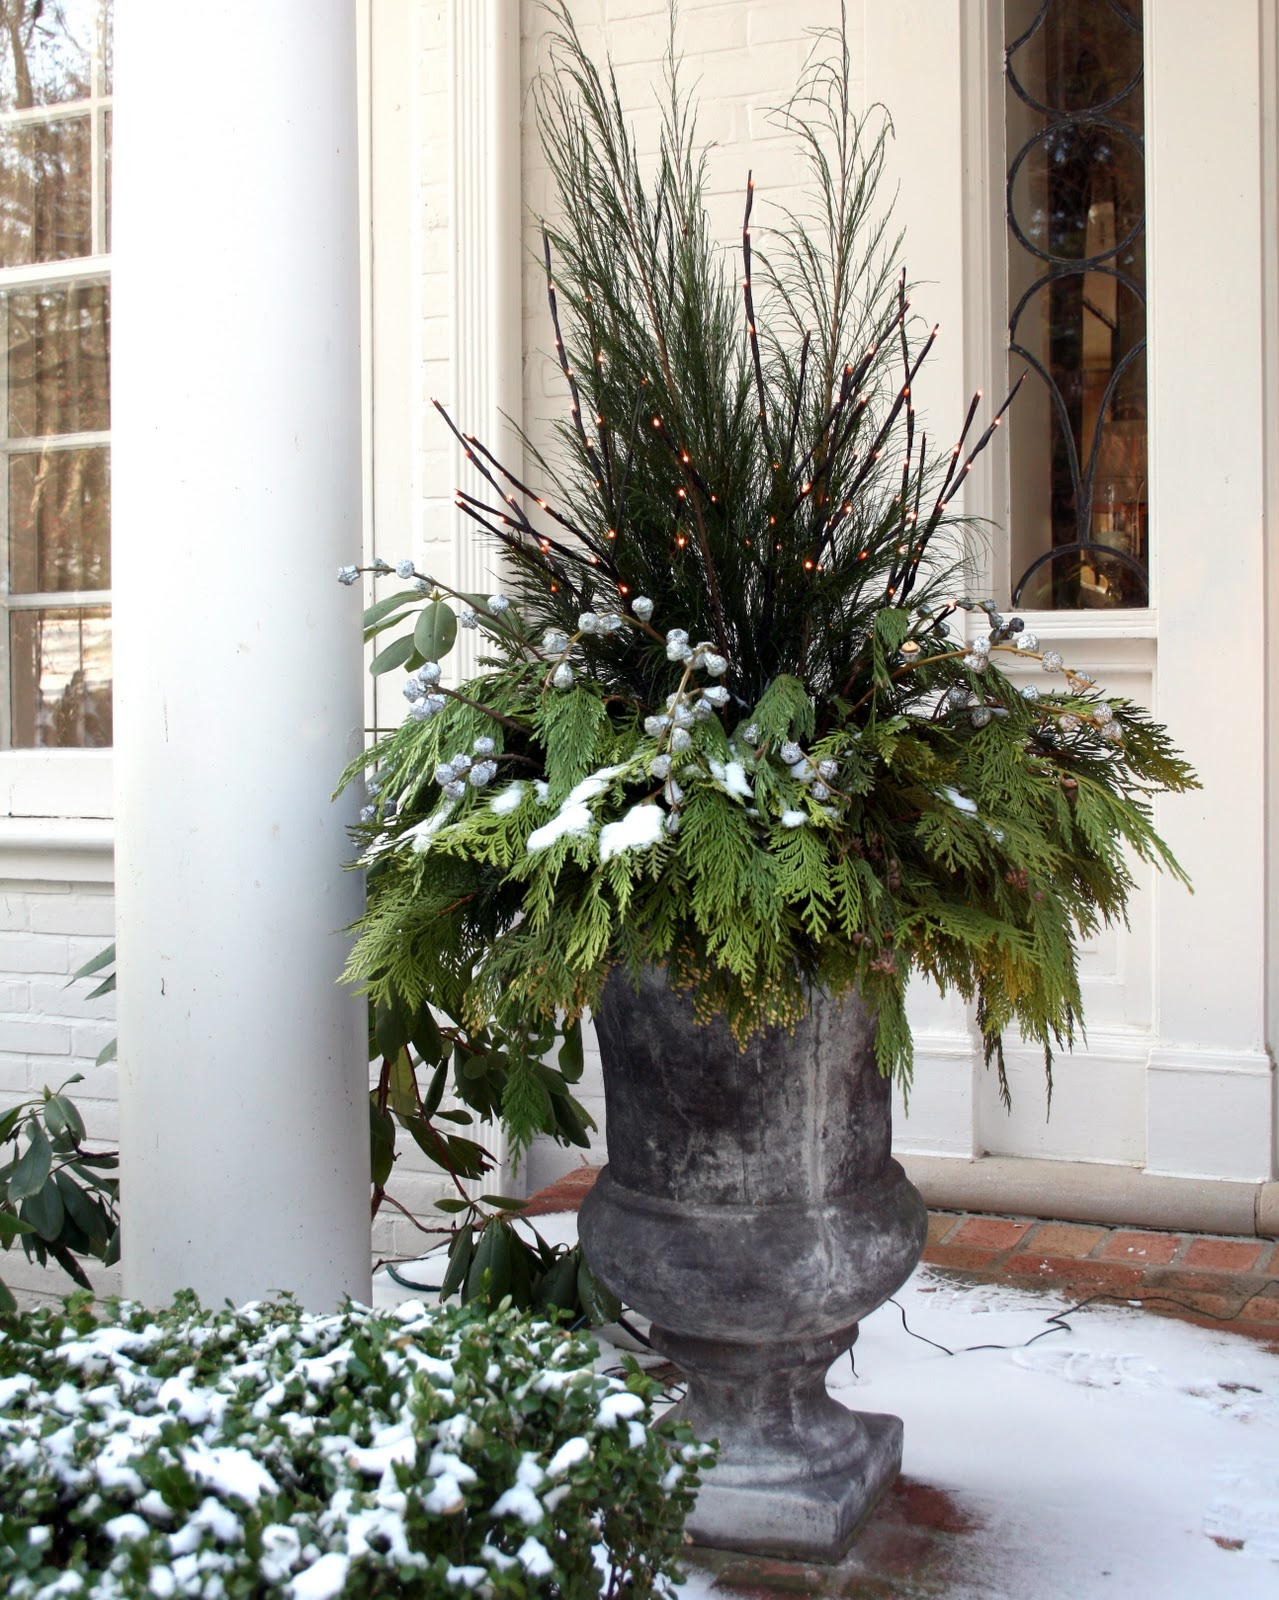 Antiqueaholics outdoor decorating keeping it simple for Easy front porch christmas decorations